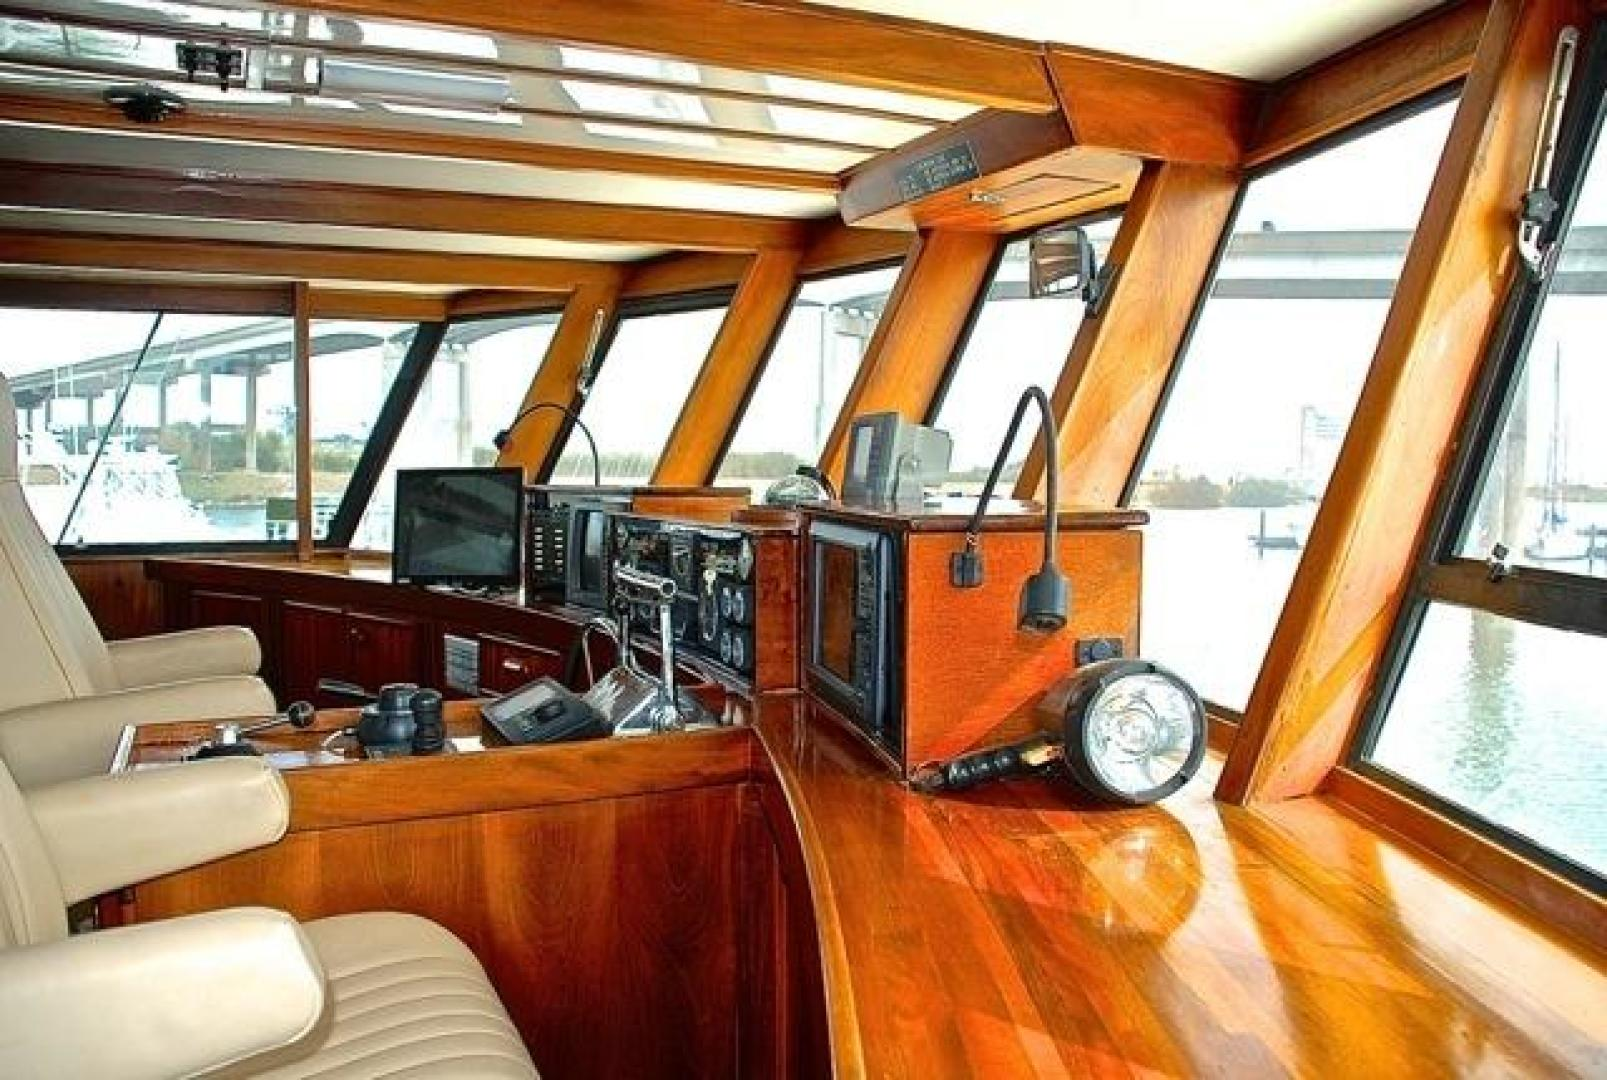 Infinity-Cockpit Motor Yacht 2001-Dont Matter Houston-Texas-United States-Pilothouse Helm View 3-1005559 | Thumbnail